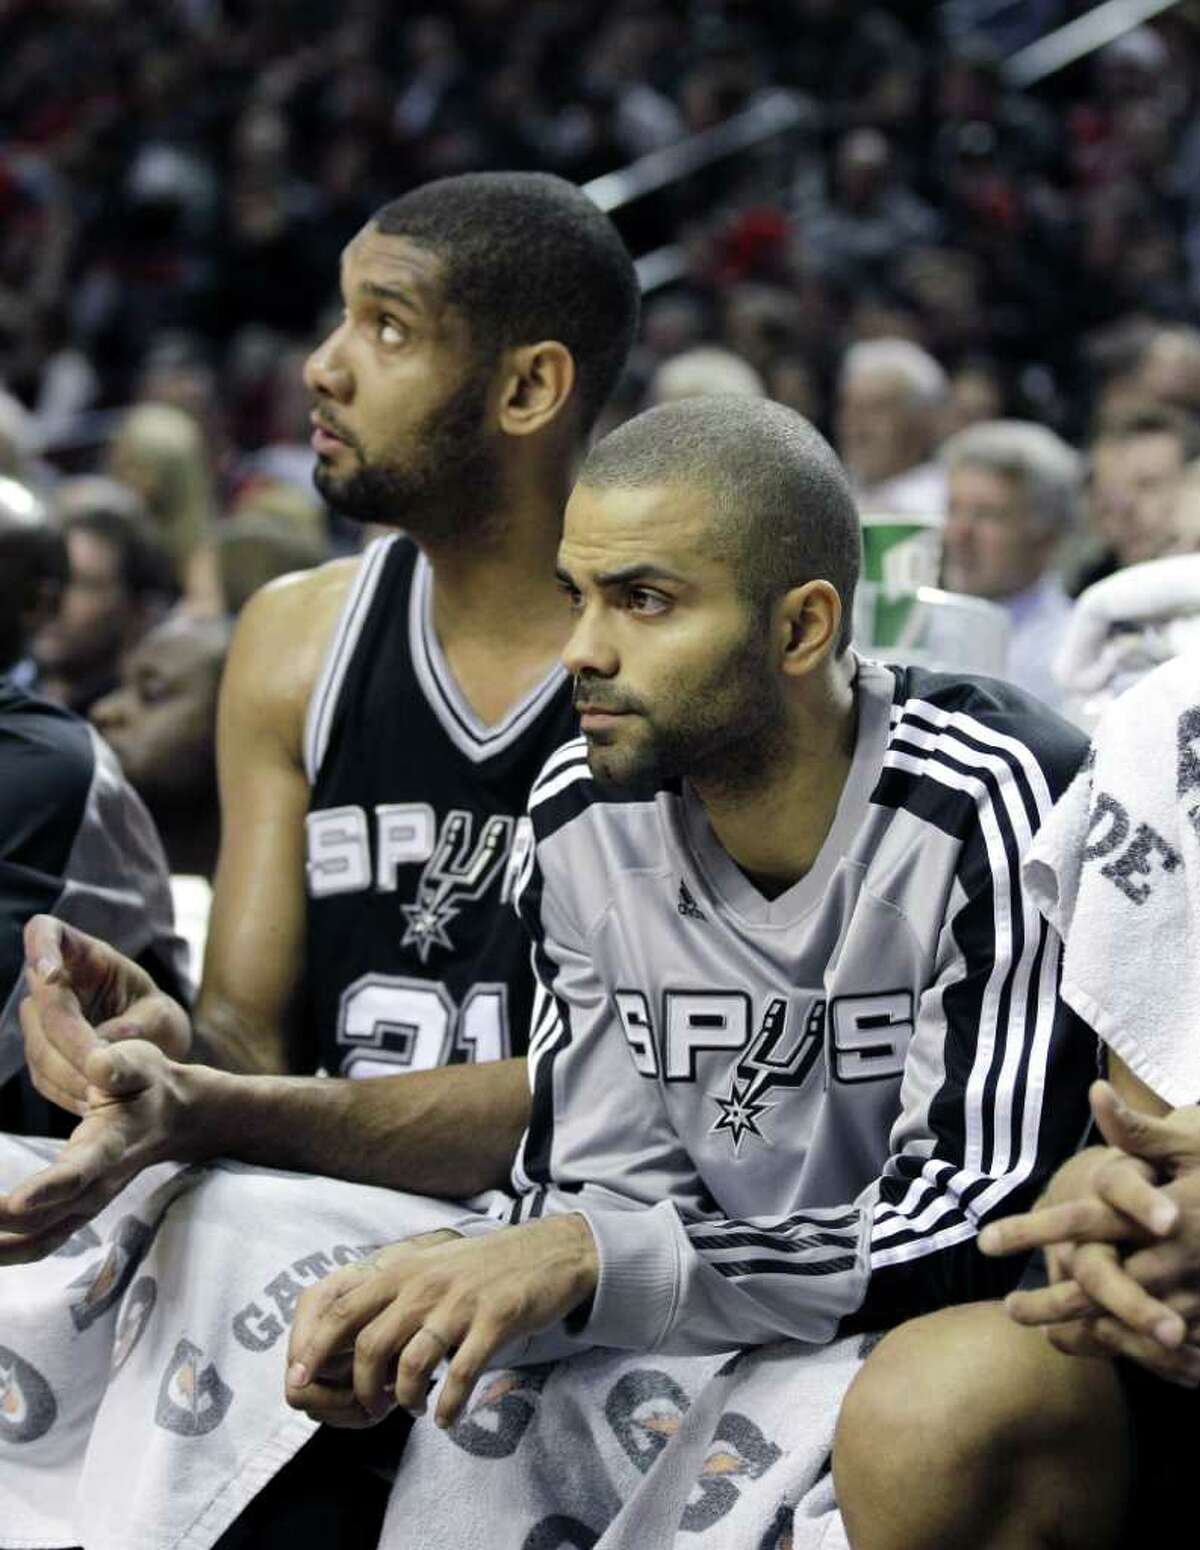 San Antonio Spurs' Tim Duncan, left, and Tony Parker look on from the bench in the first half during an NBA basketball game with Portland Trail Blazers Tuesday, Feb. 1, 2011, in Portland, Ore. The Trail Blazers defeated the Spurs 99-86.